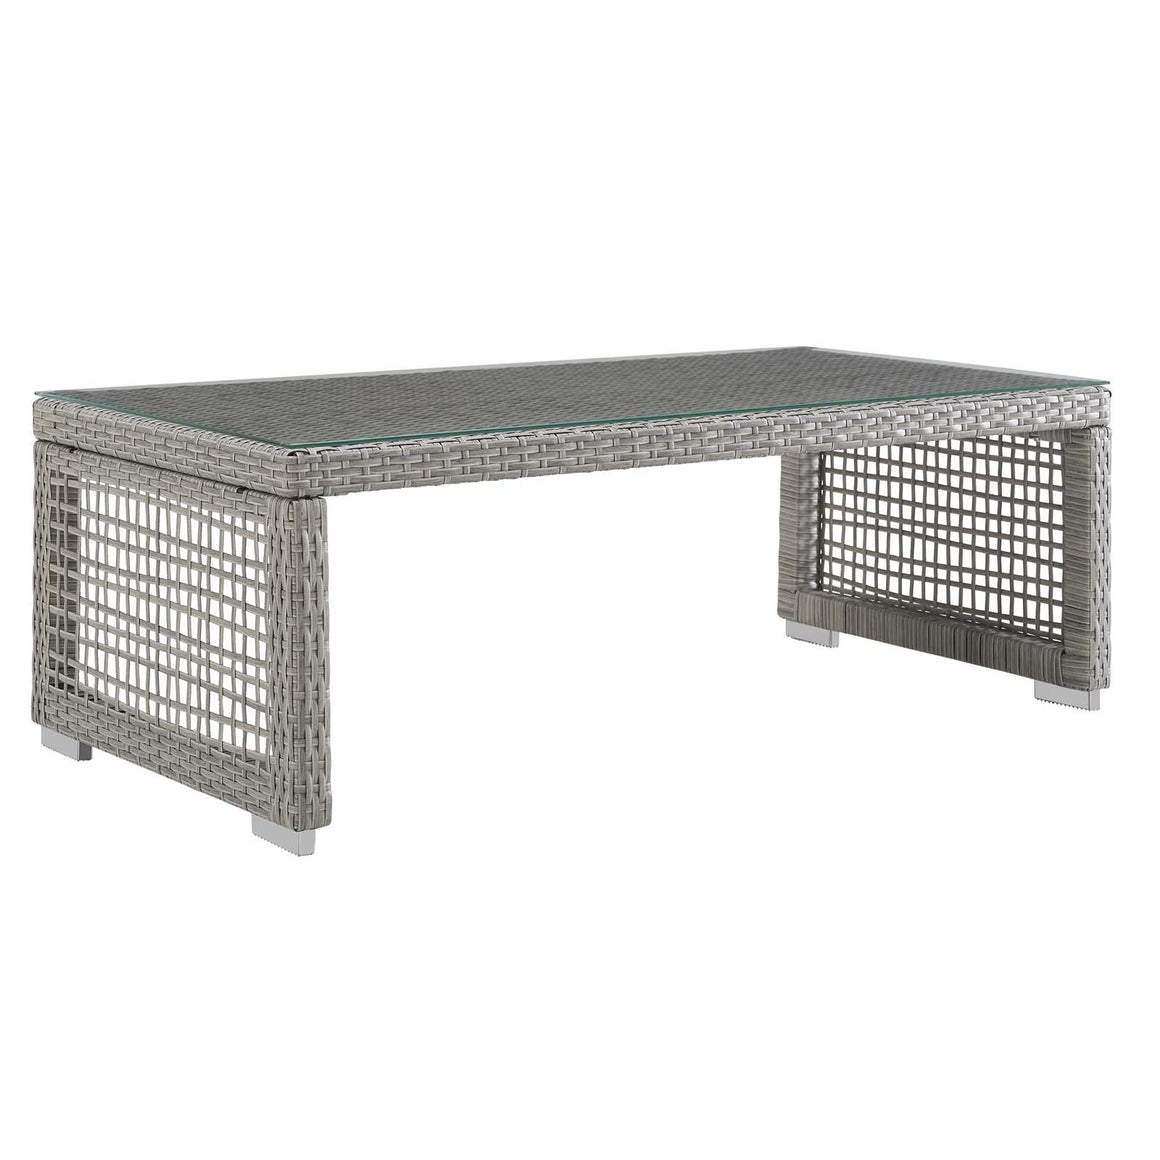 AURA RATTAN OUTDOOR PATIO COFFEE TABLE IN GRAY